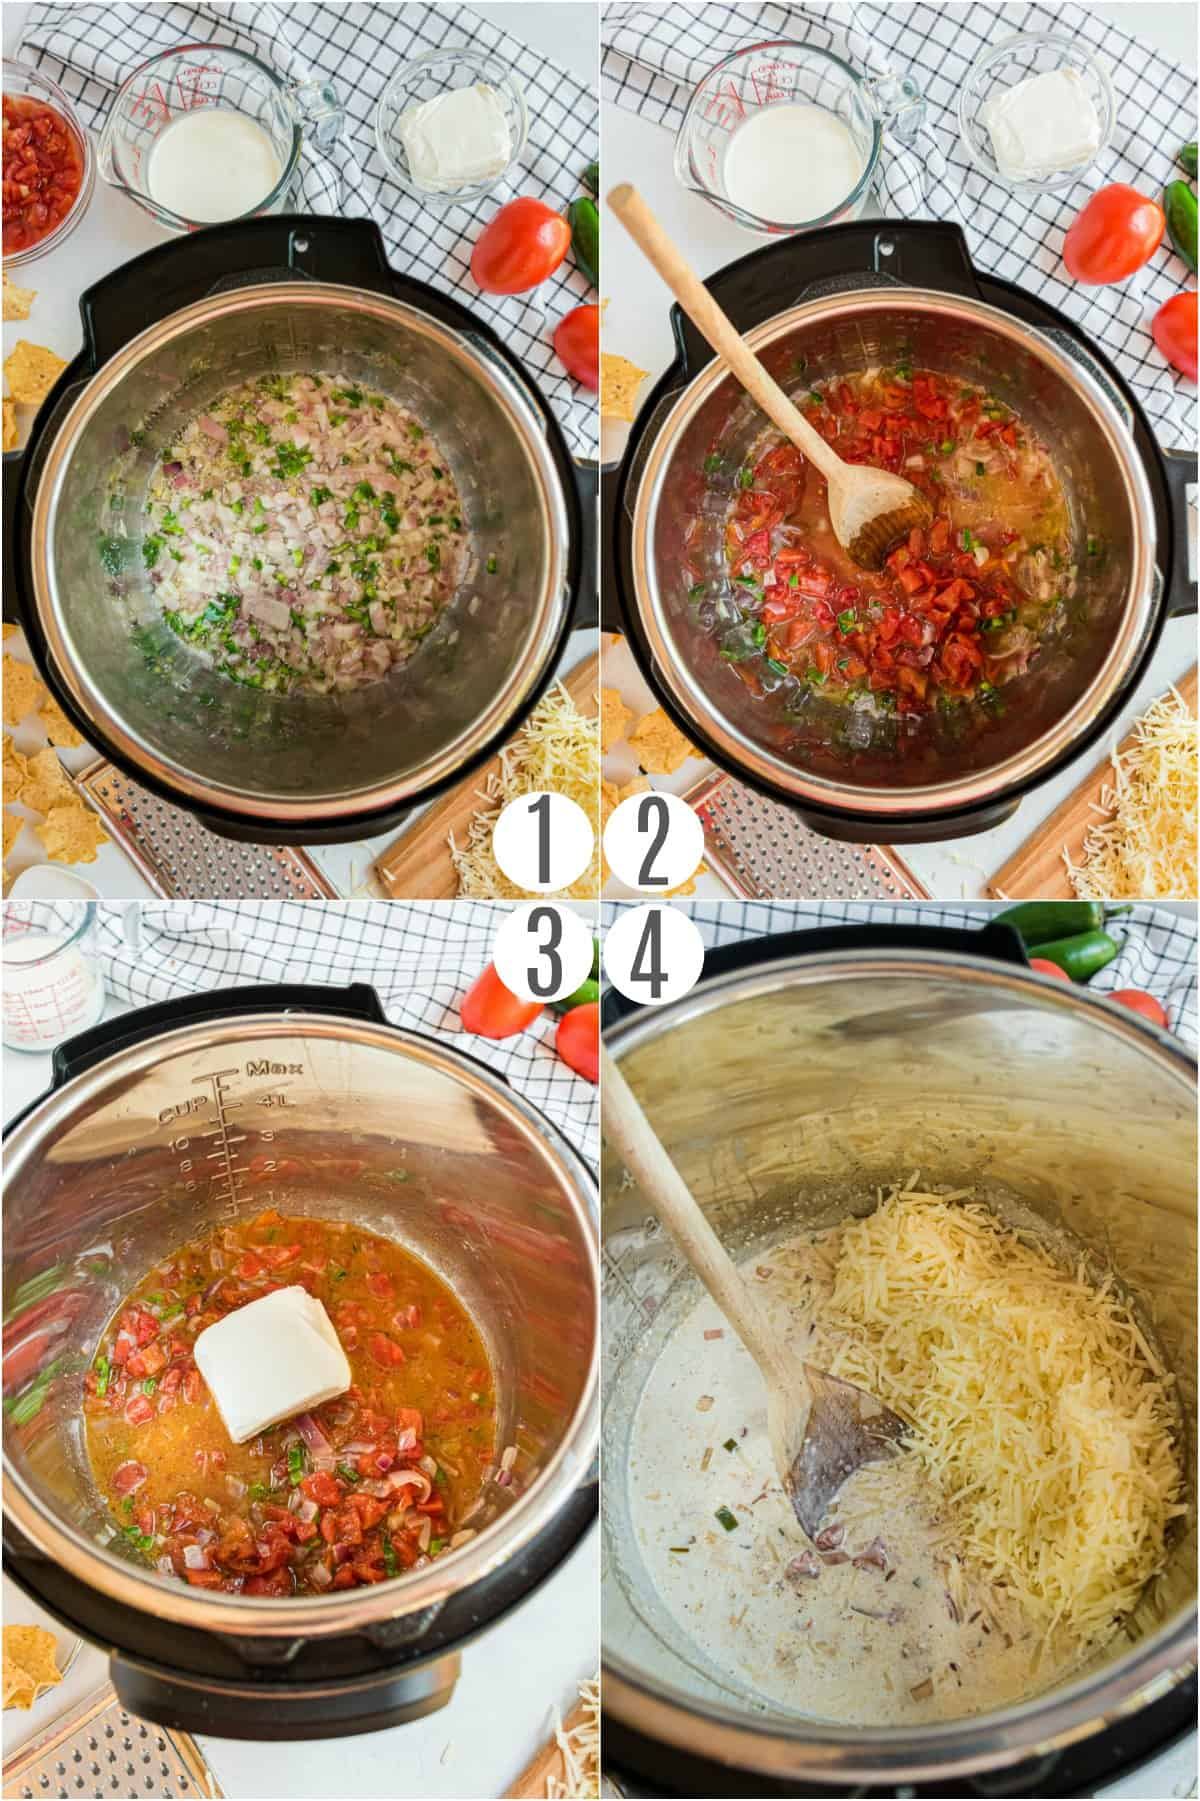 Step by step photos showing how to make queso in the pressure cooker.